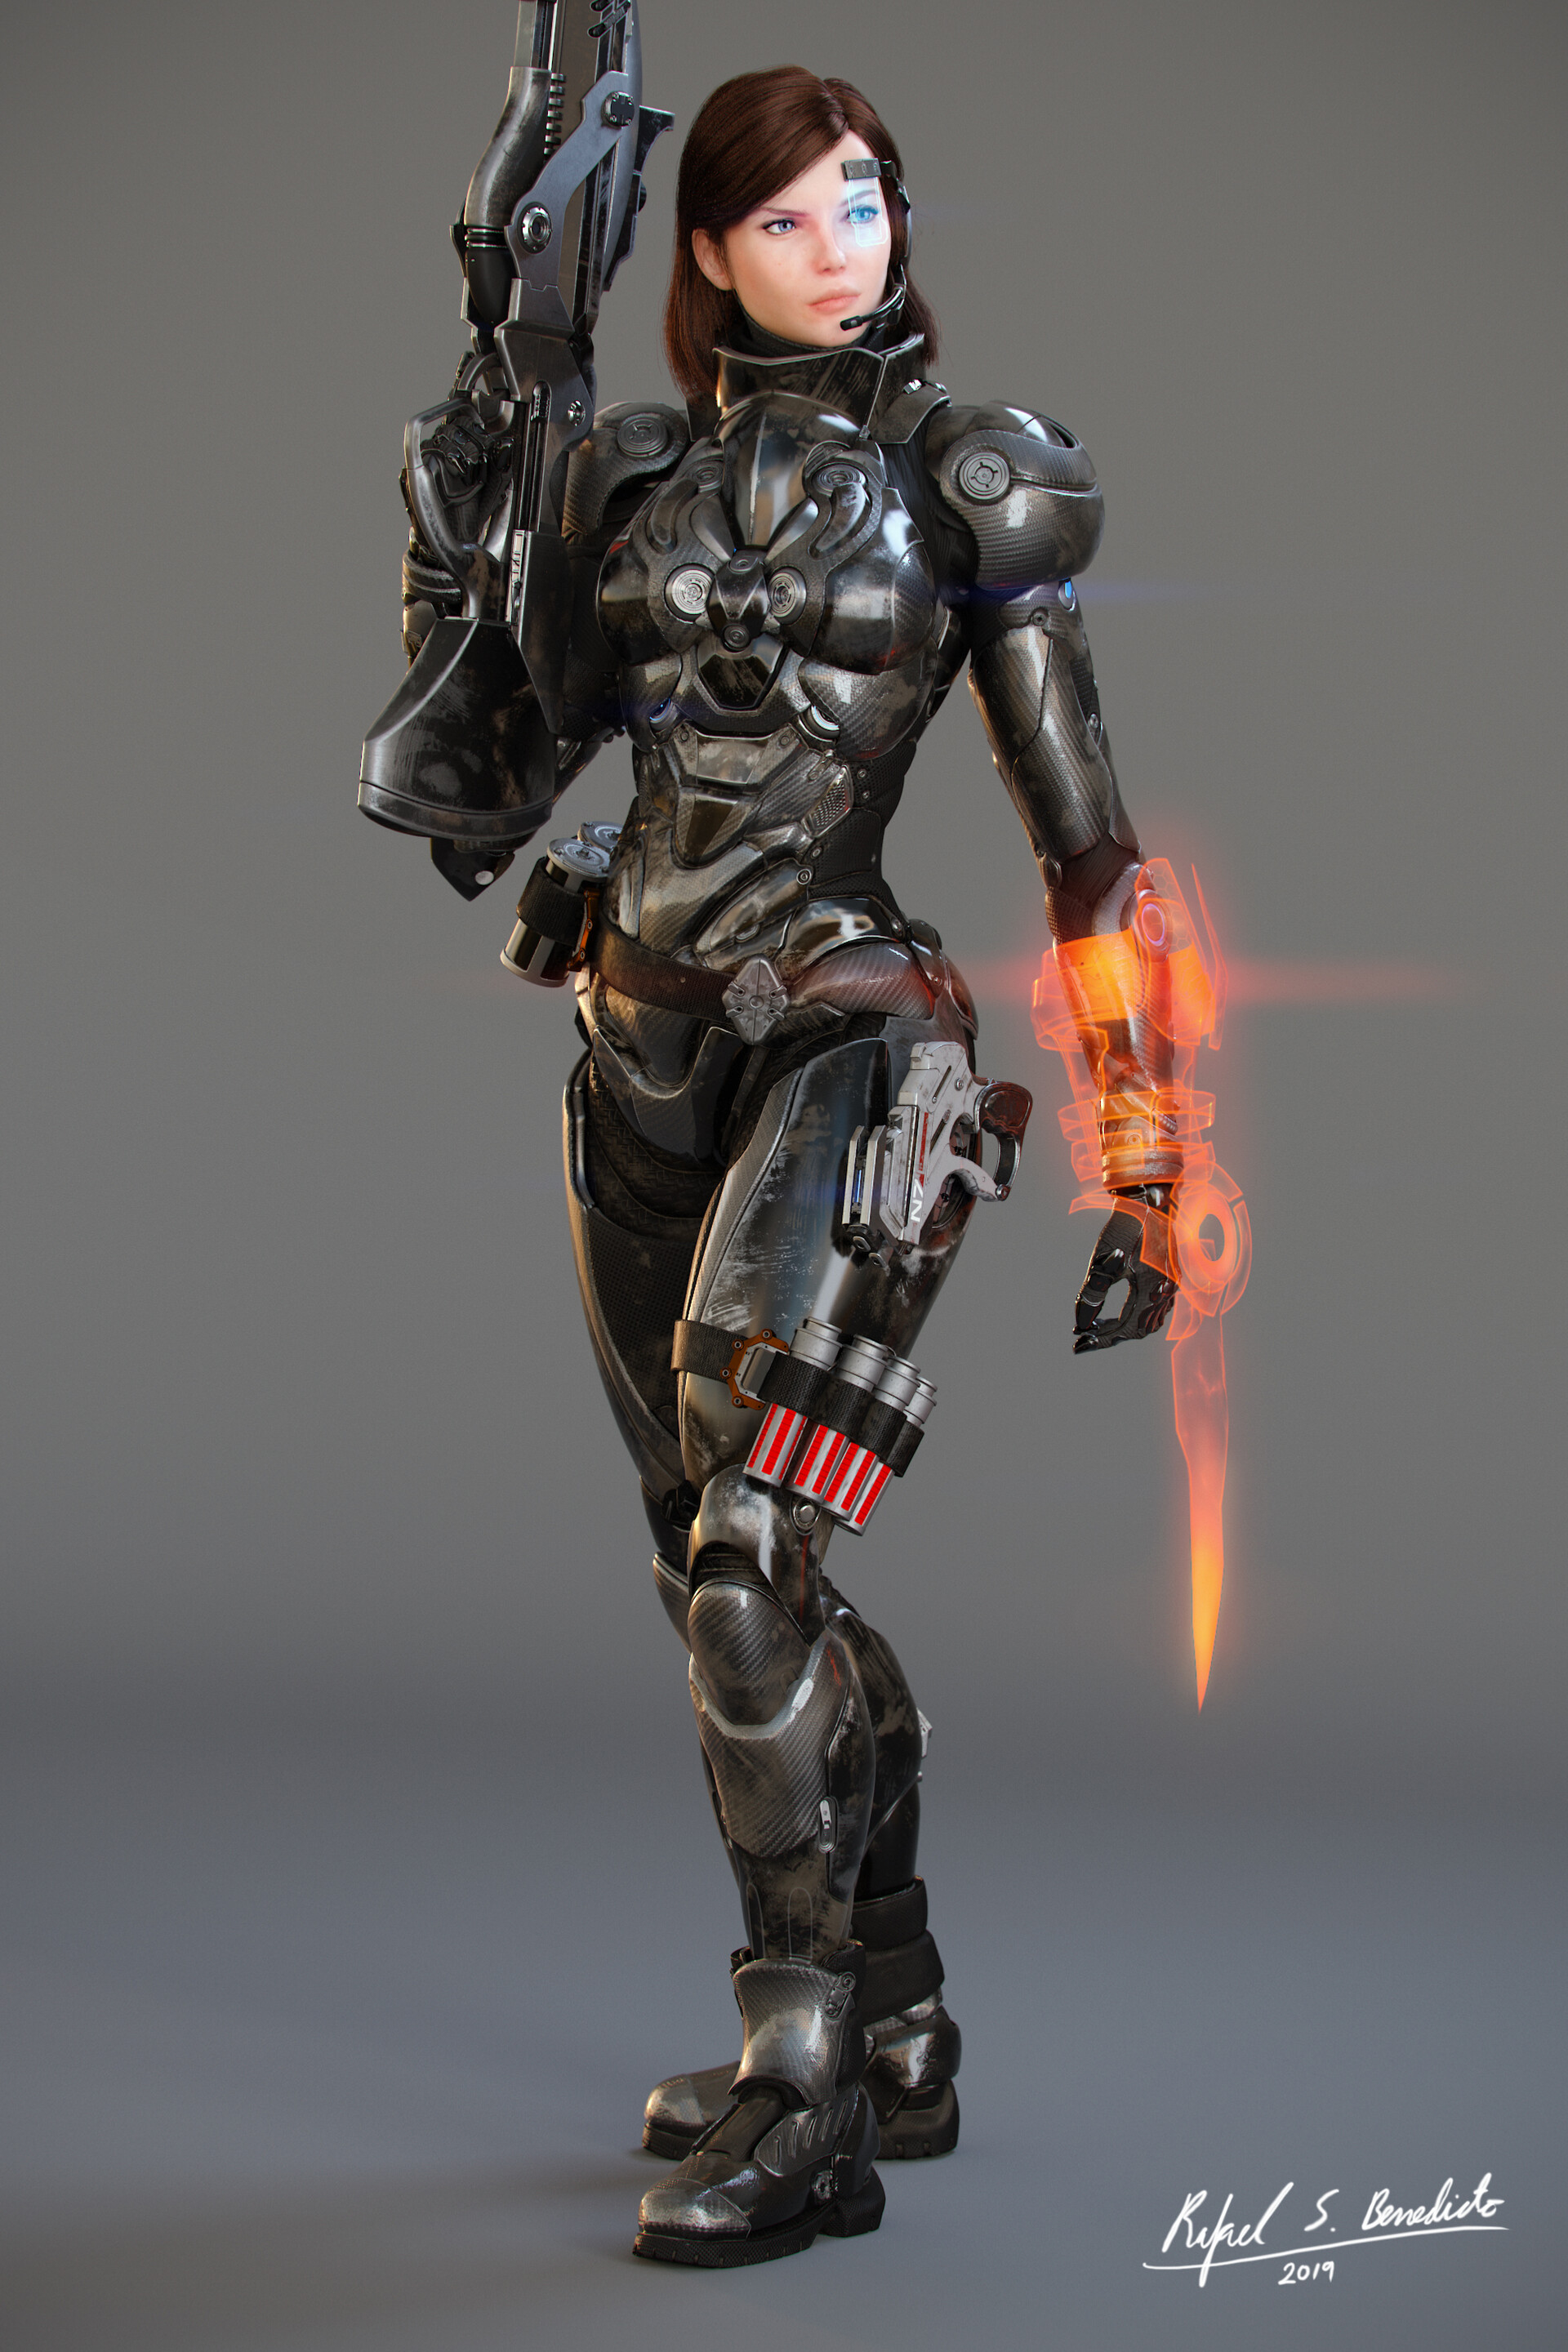 rafael-benedicto-preview-3.jpg - Mass Effect 3